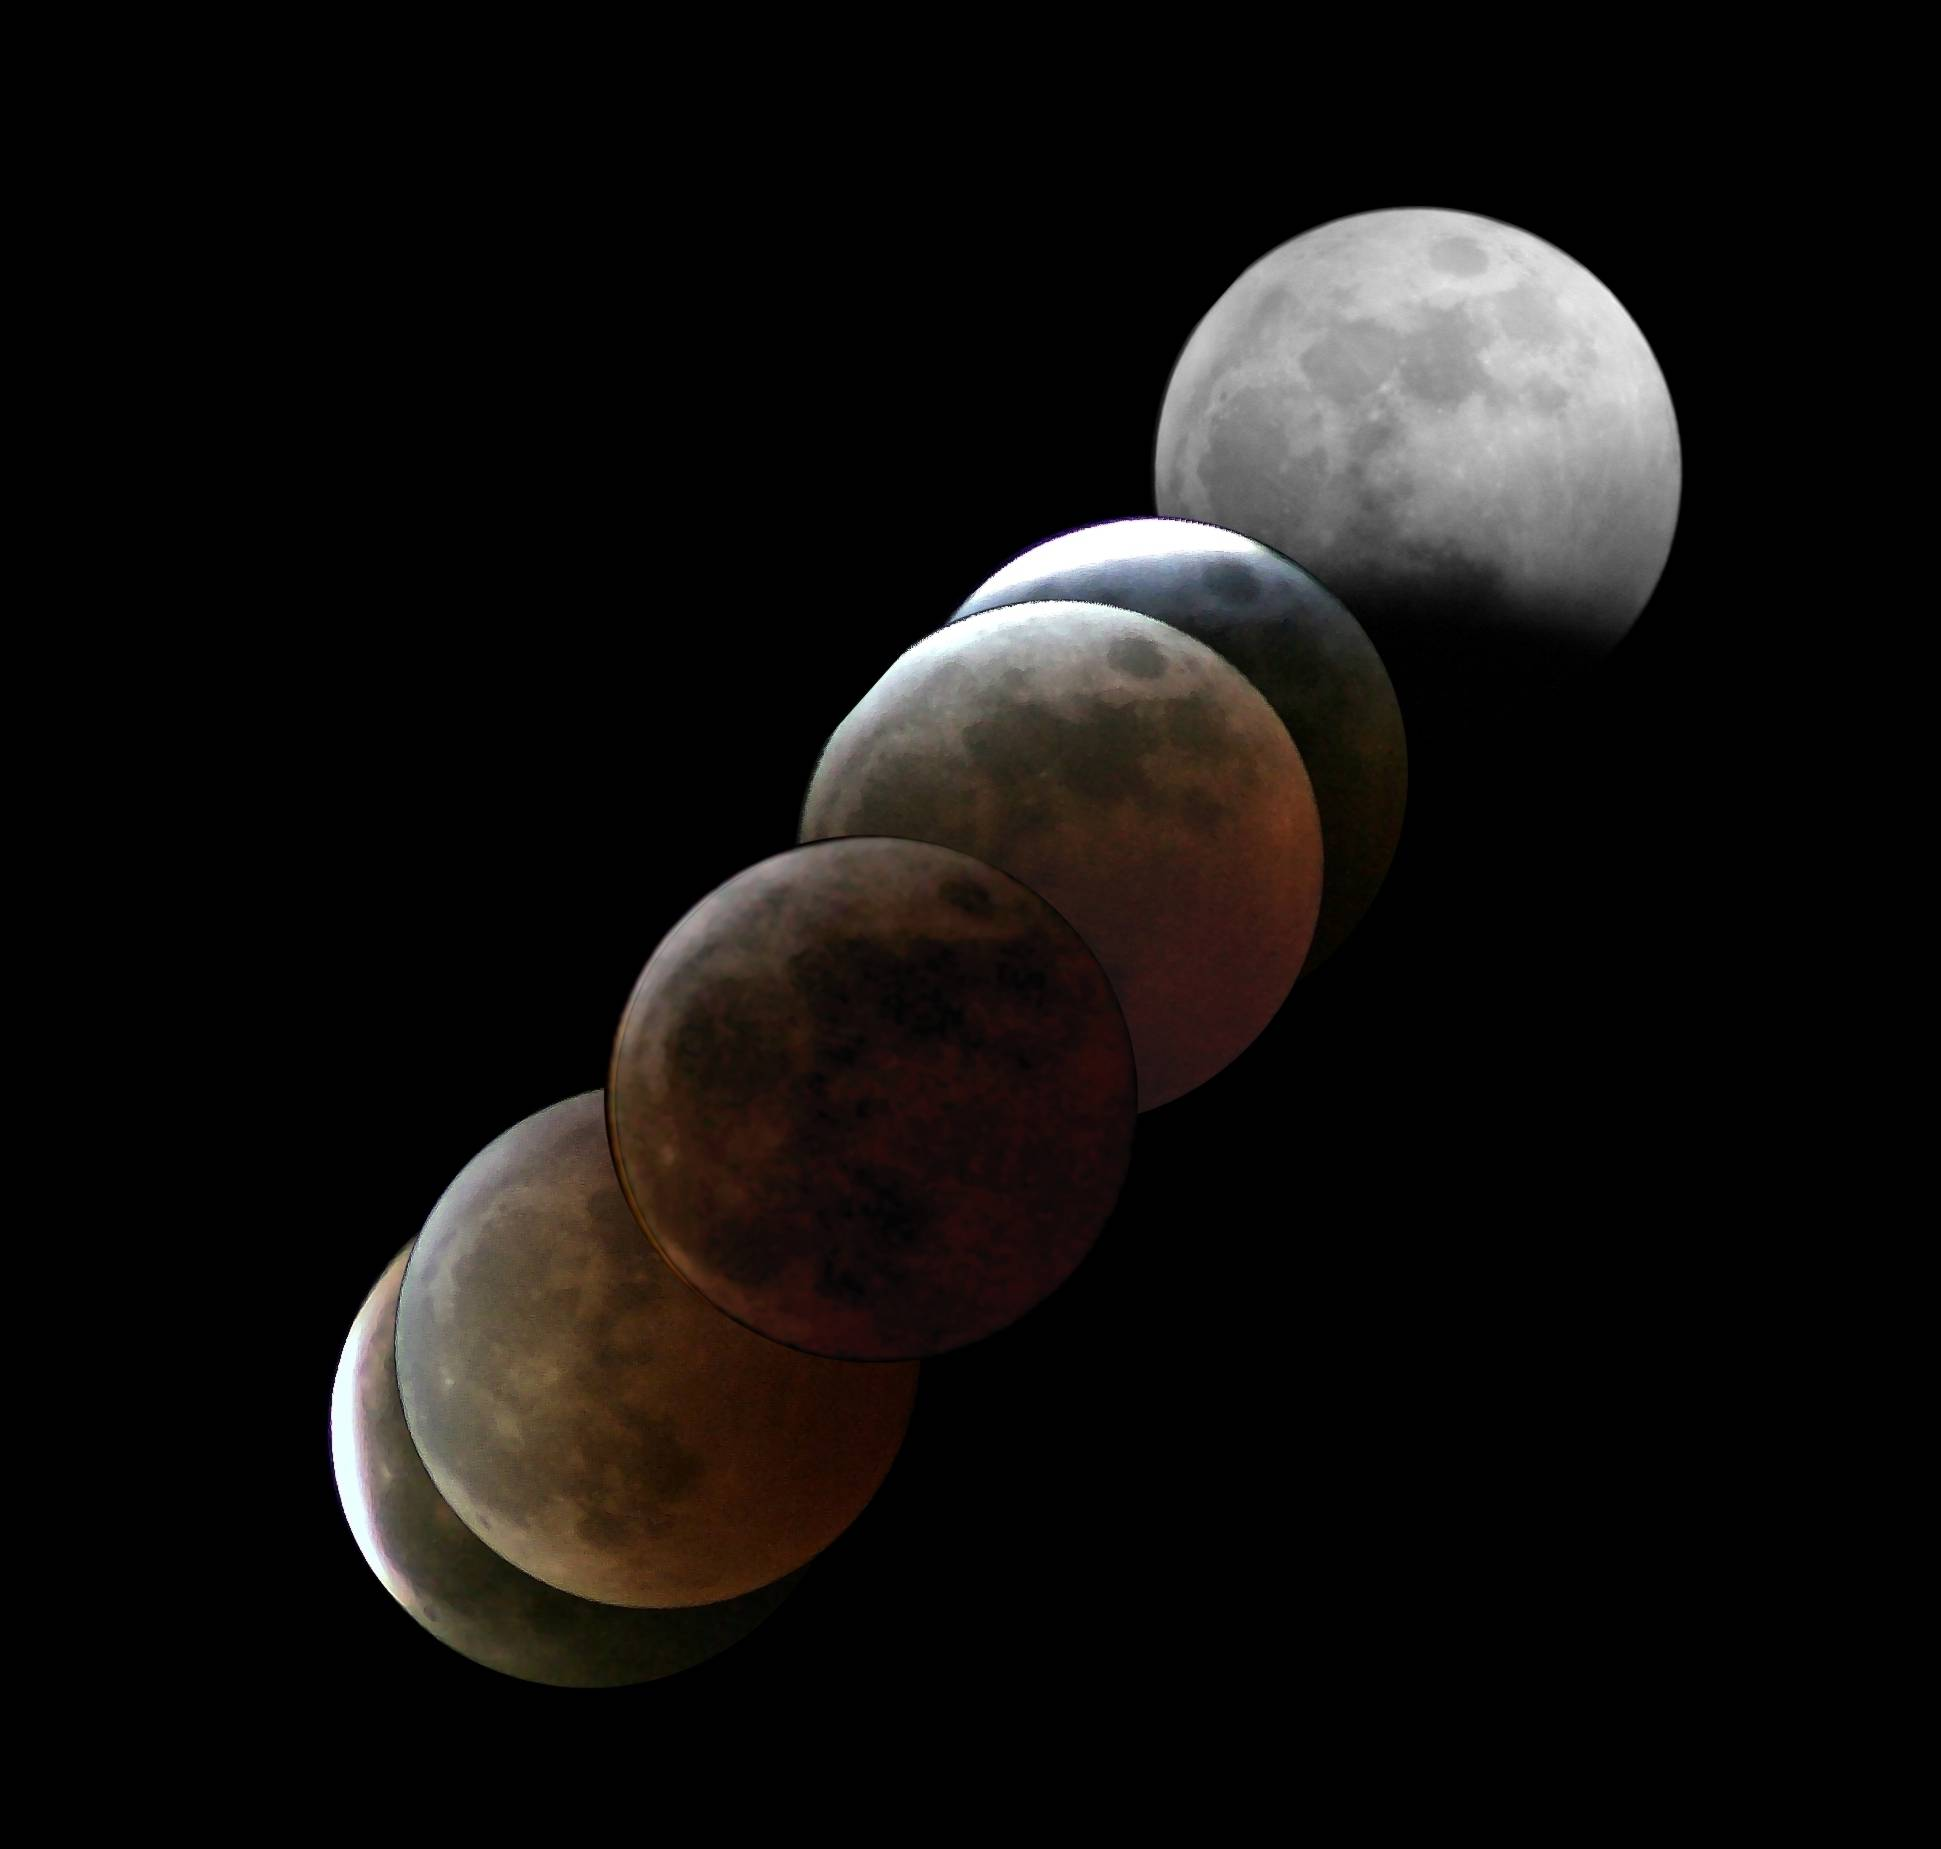 an overview of the beginning of time in astronomy Since galileo's time, astronomy has made great strides,  please take the time to browse our site and first try to use the resources online to find an answer to .